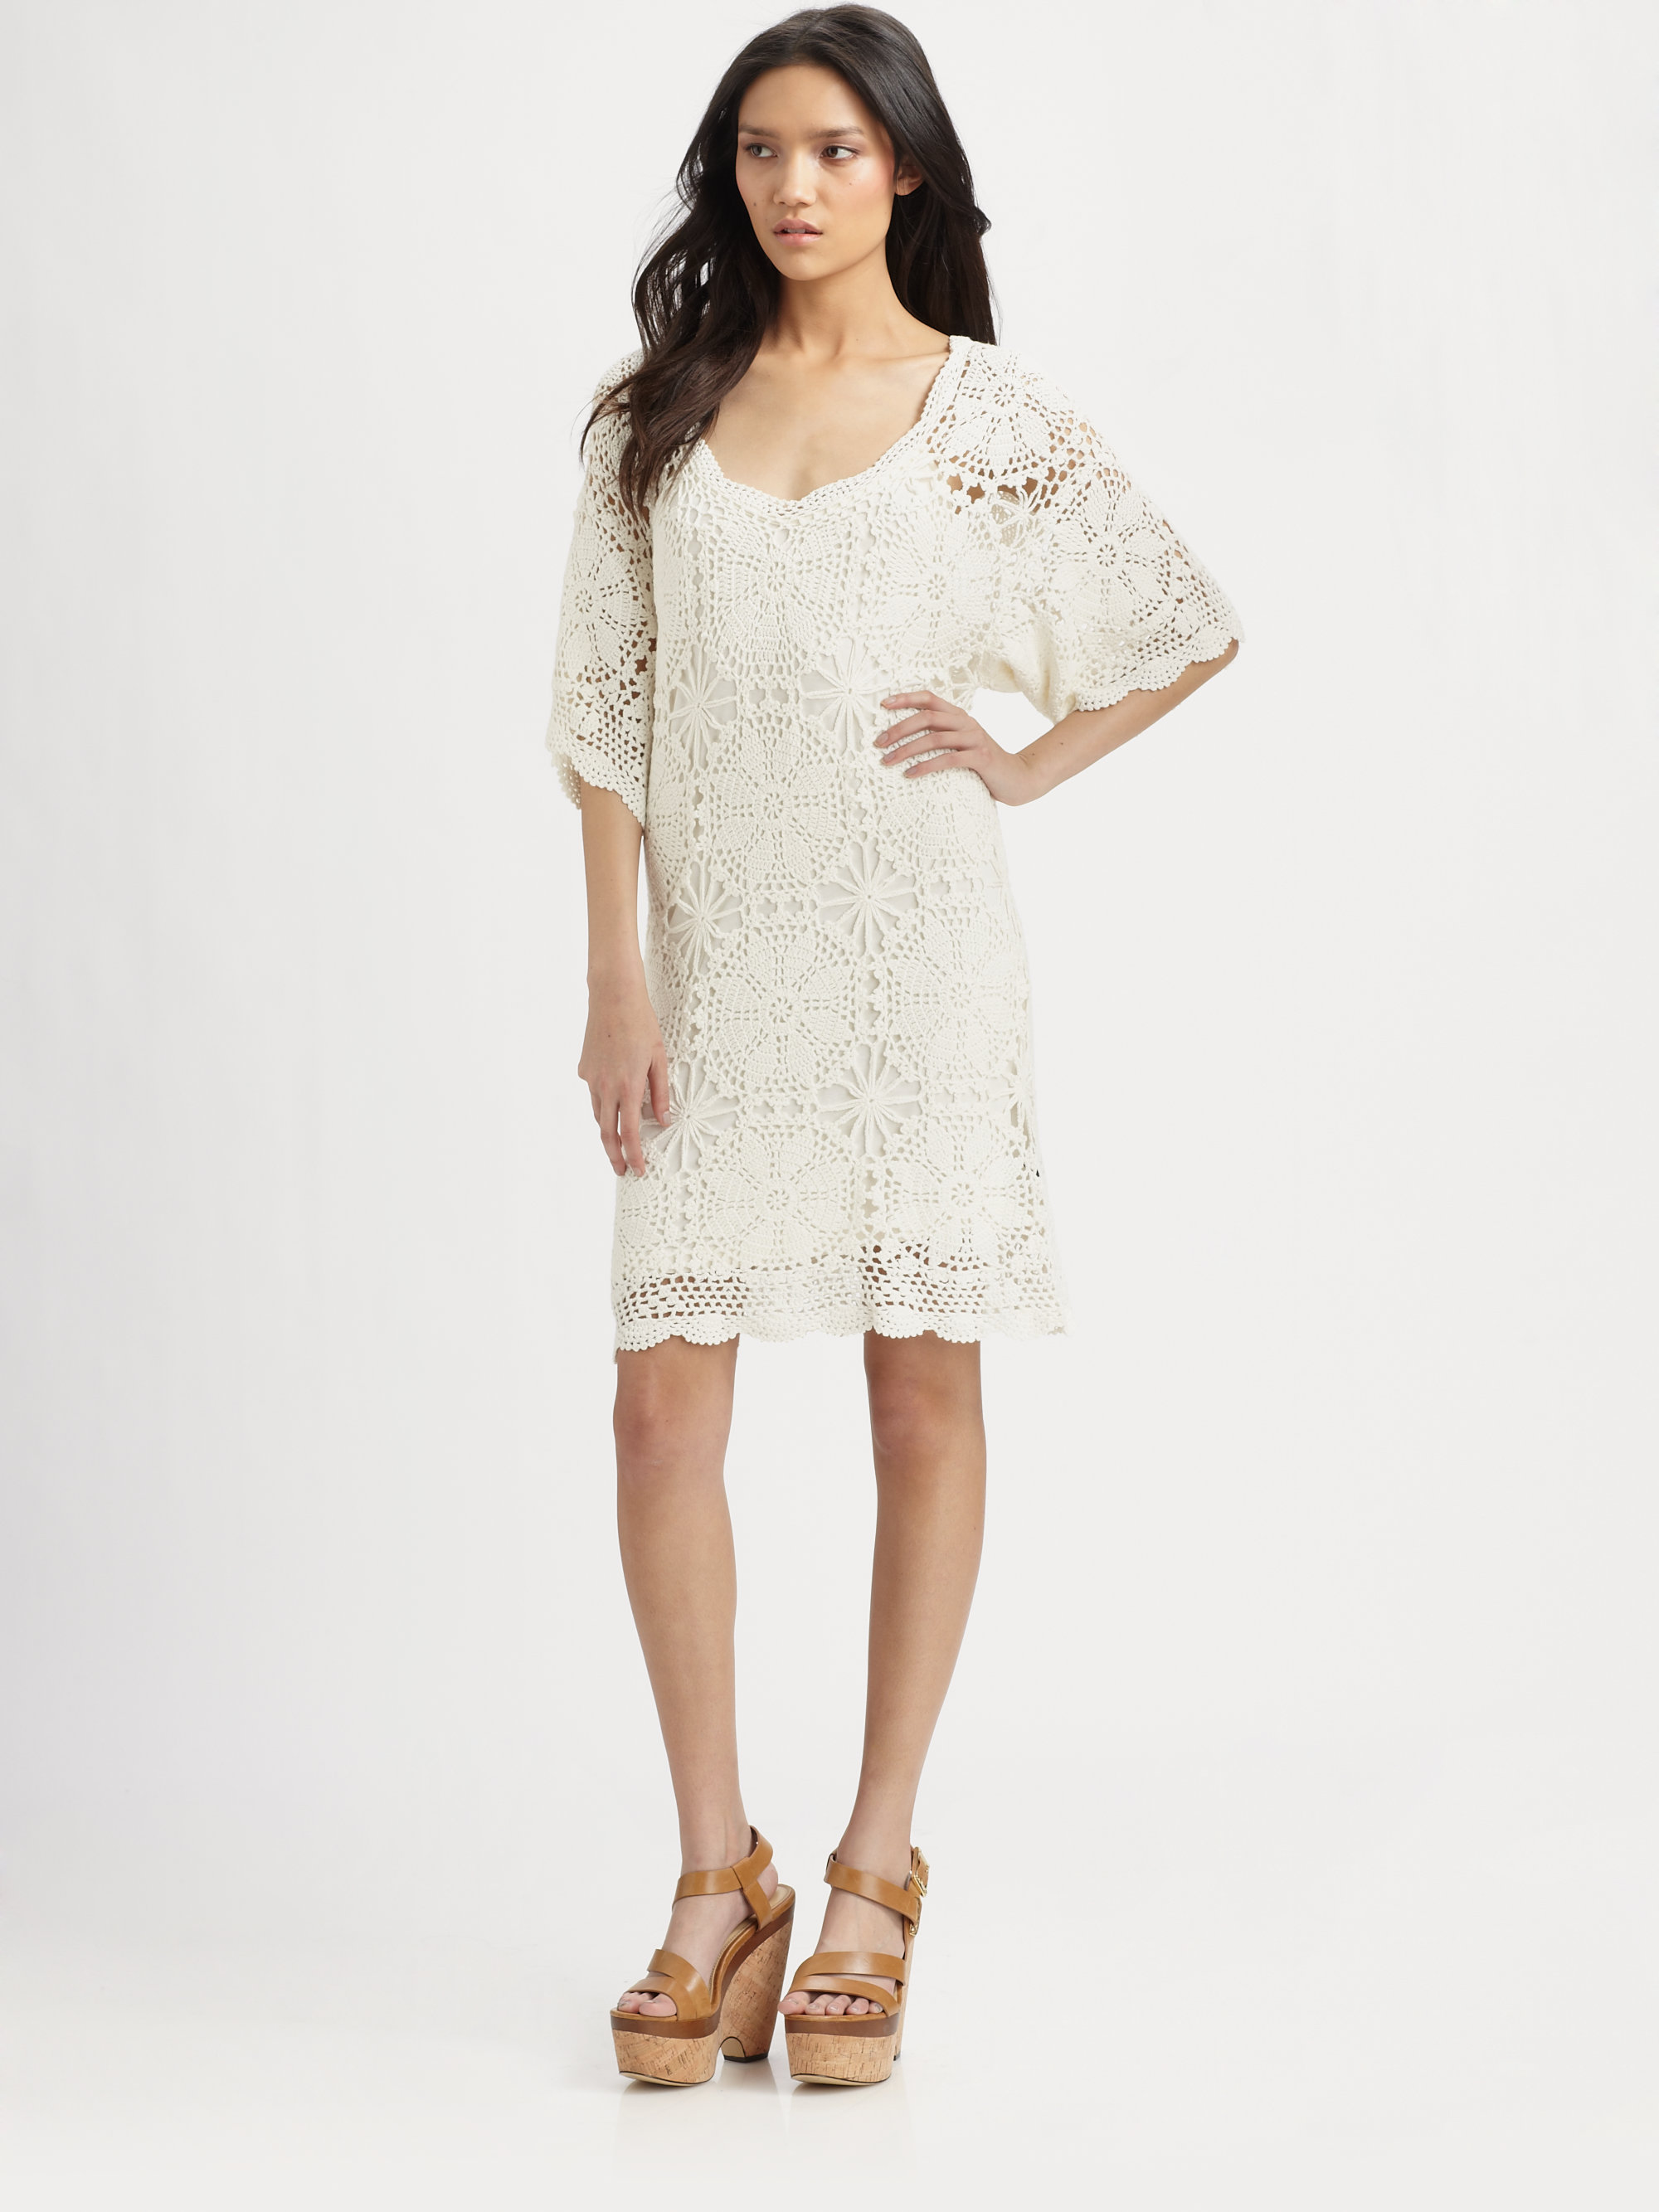 Semi sheer lace dress